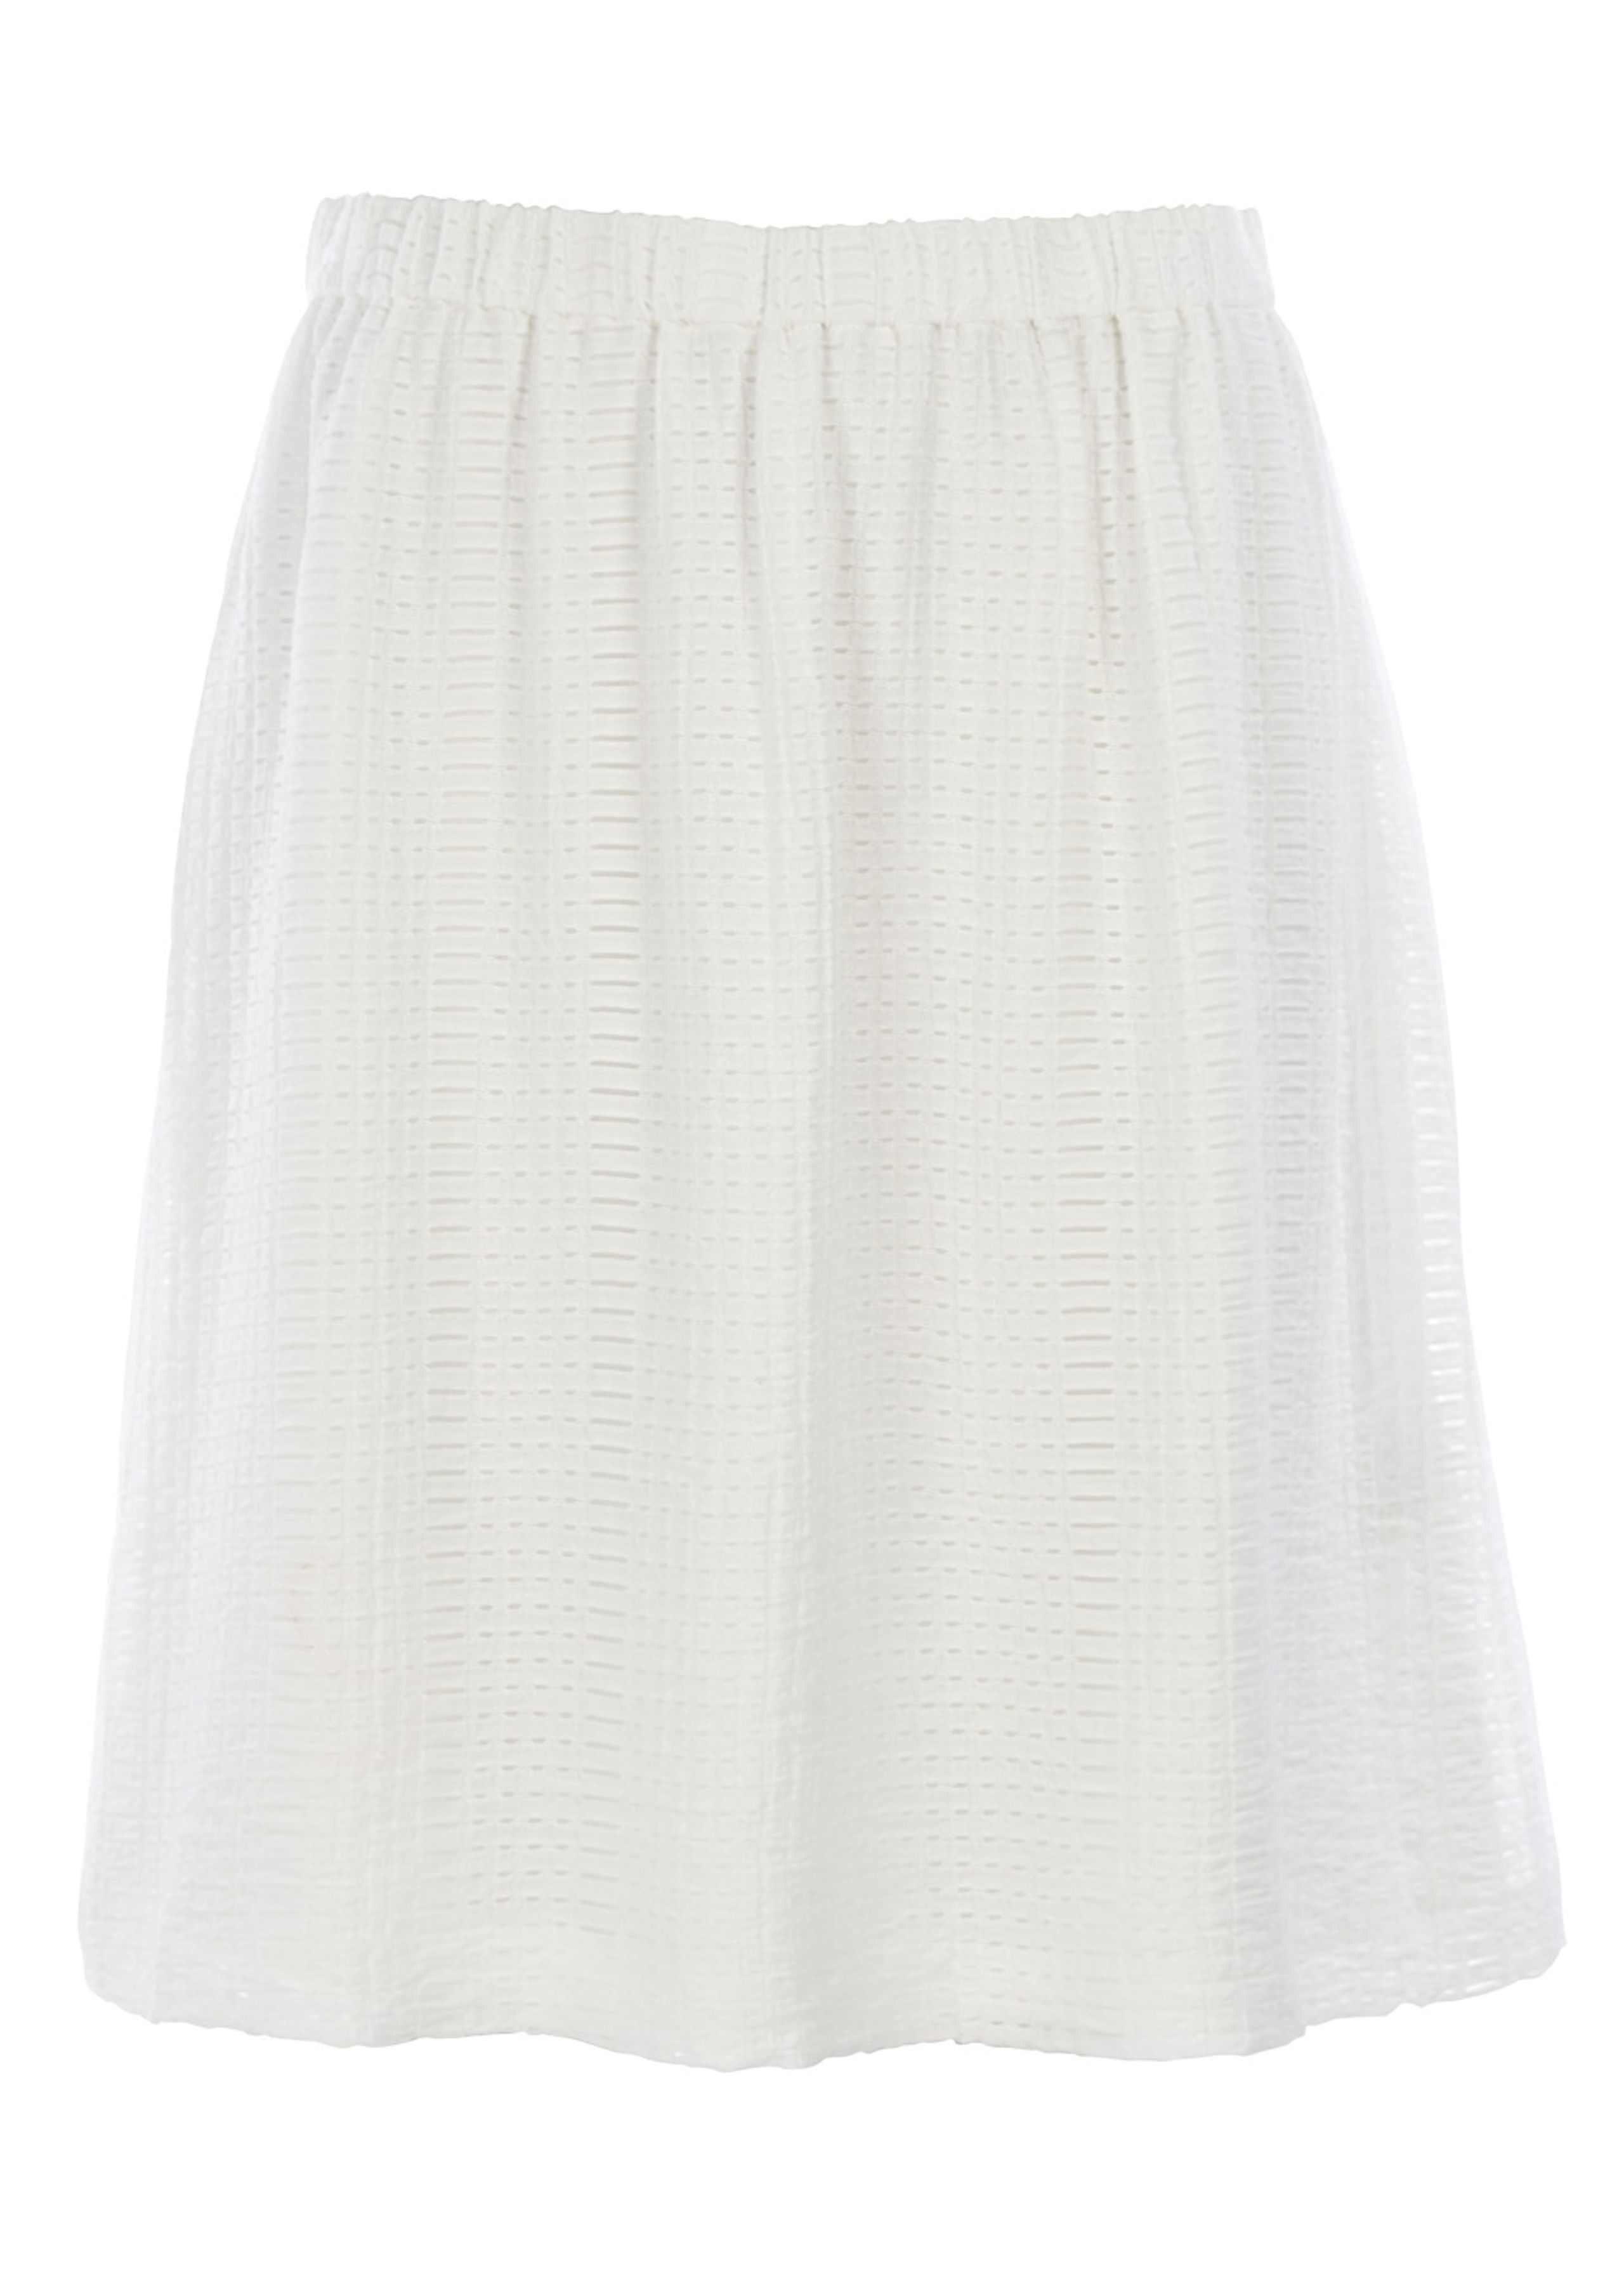 Structure skirt lace